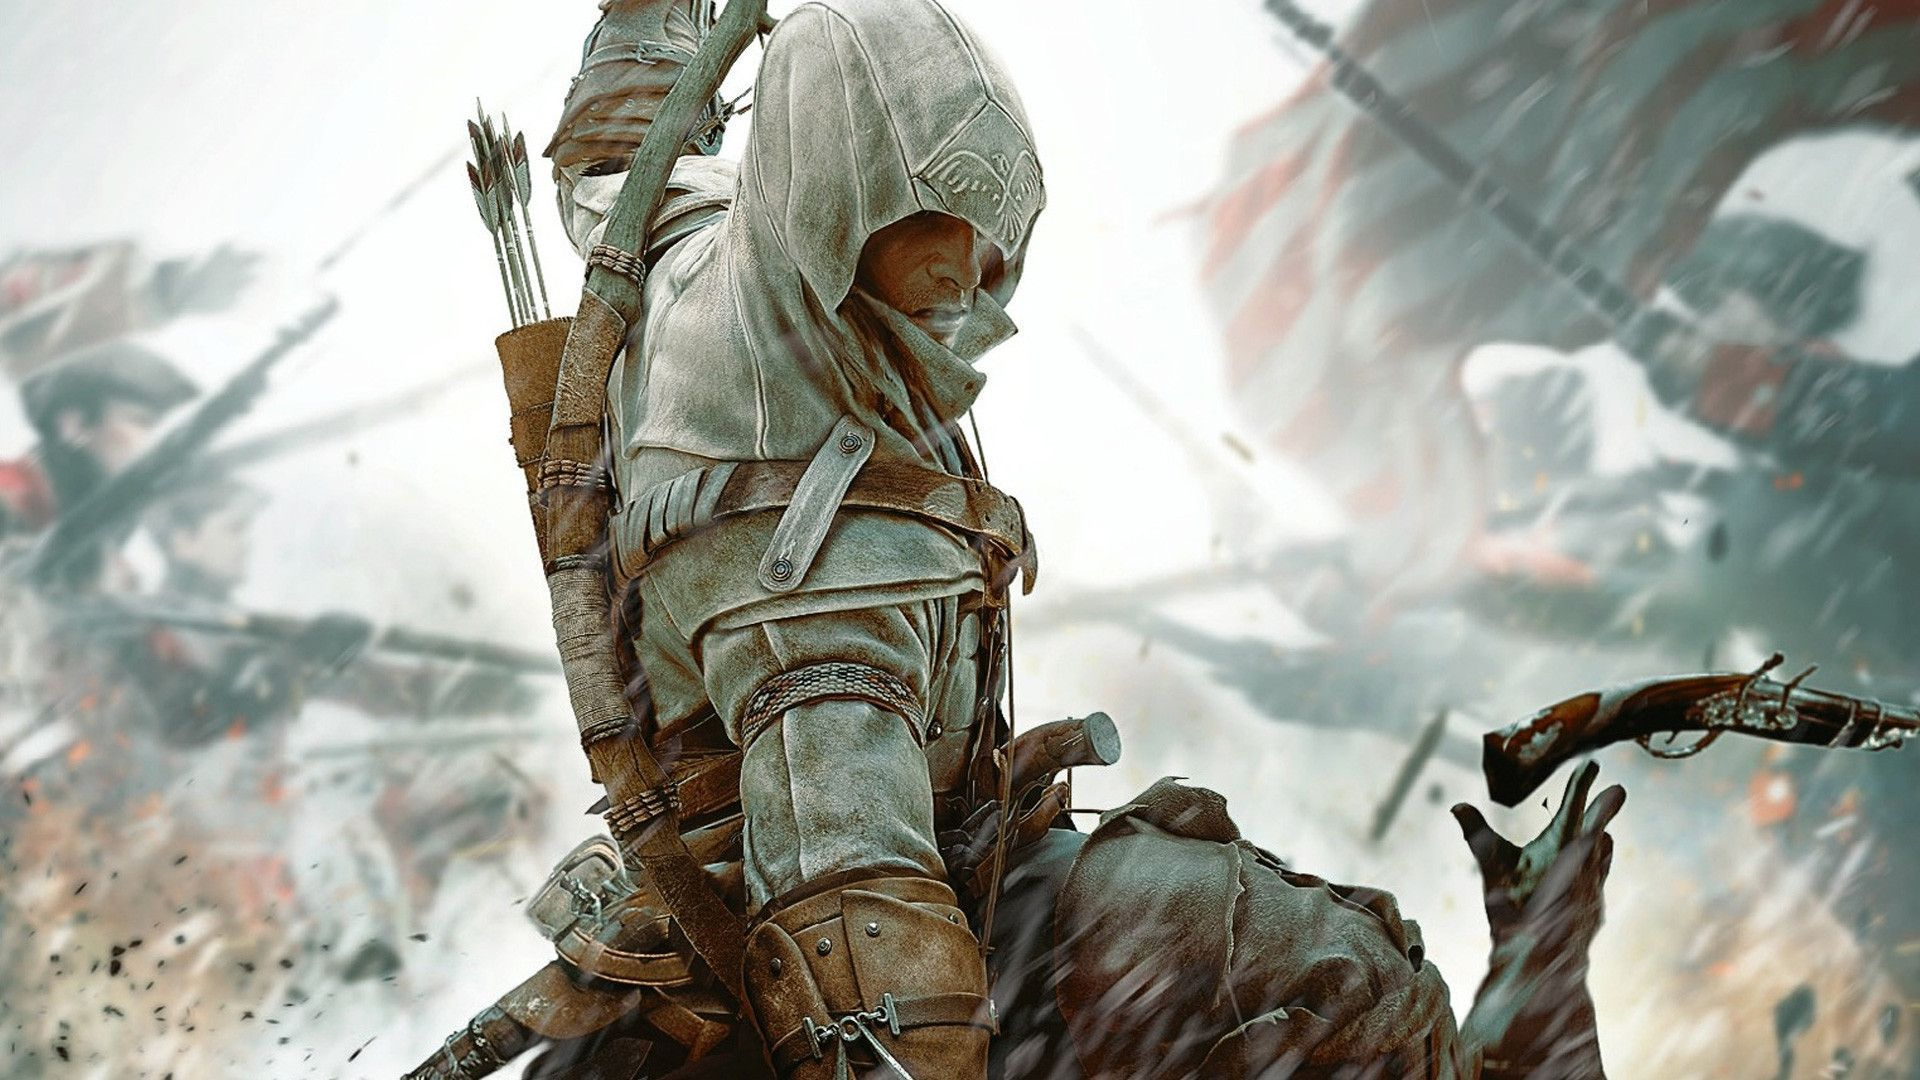 Assassins creed hd desktop wallpapers for wallpapers pinterest assassins creed hd desktop wallpapers for voltagebd Gallery